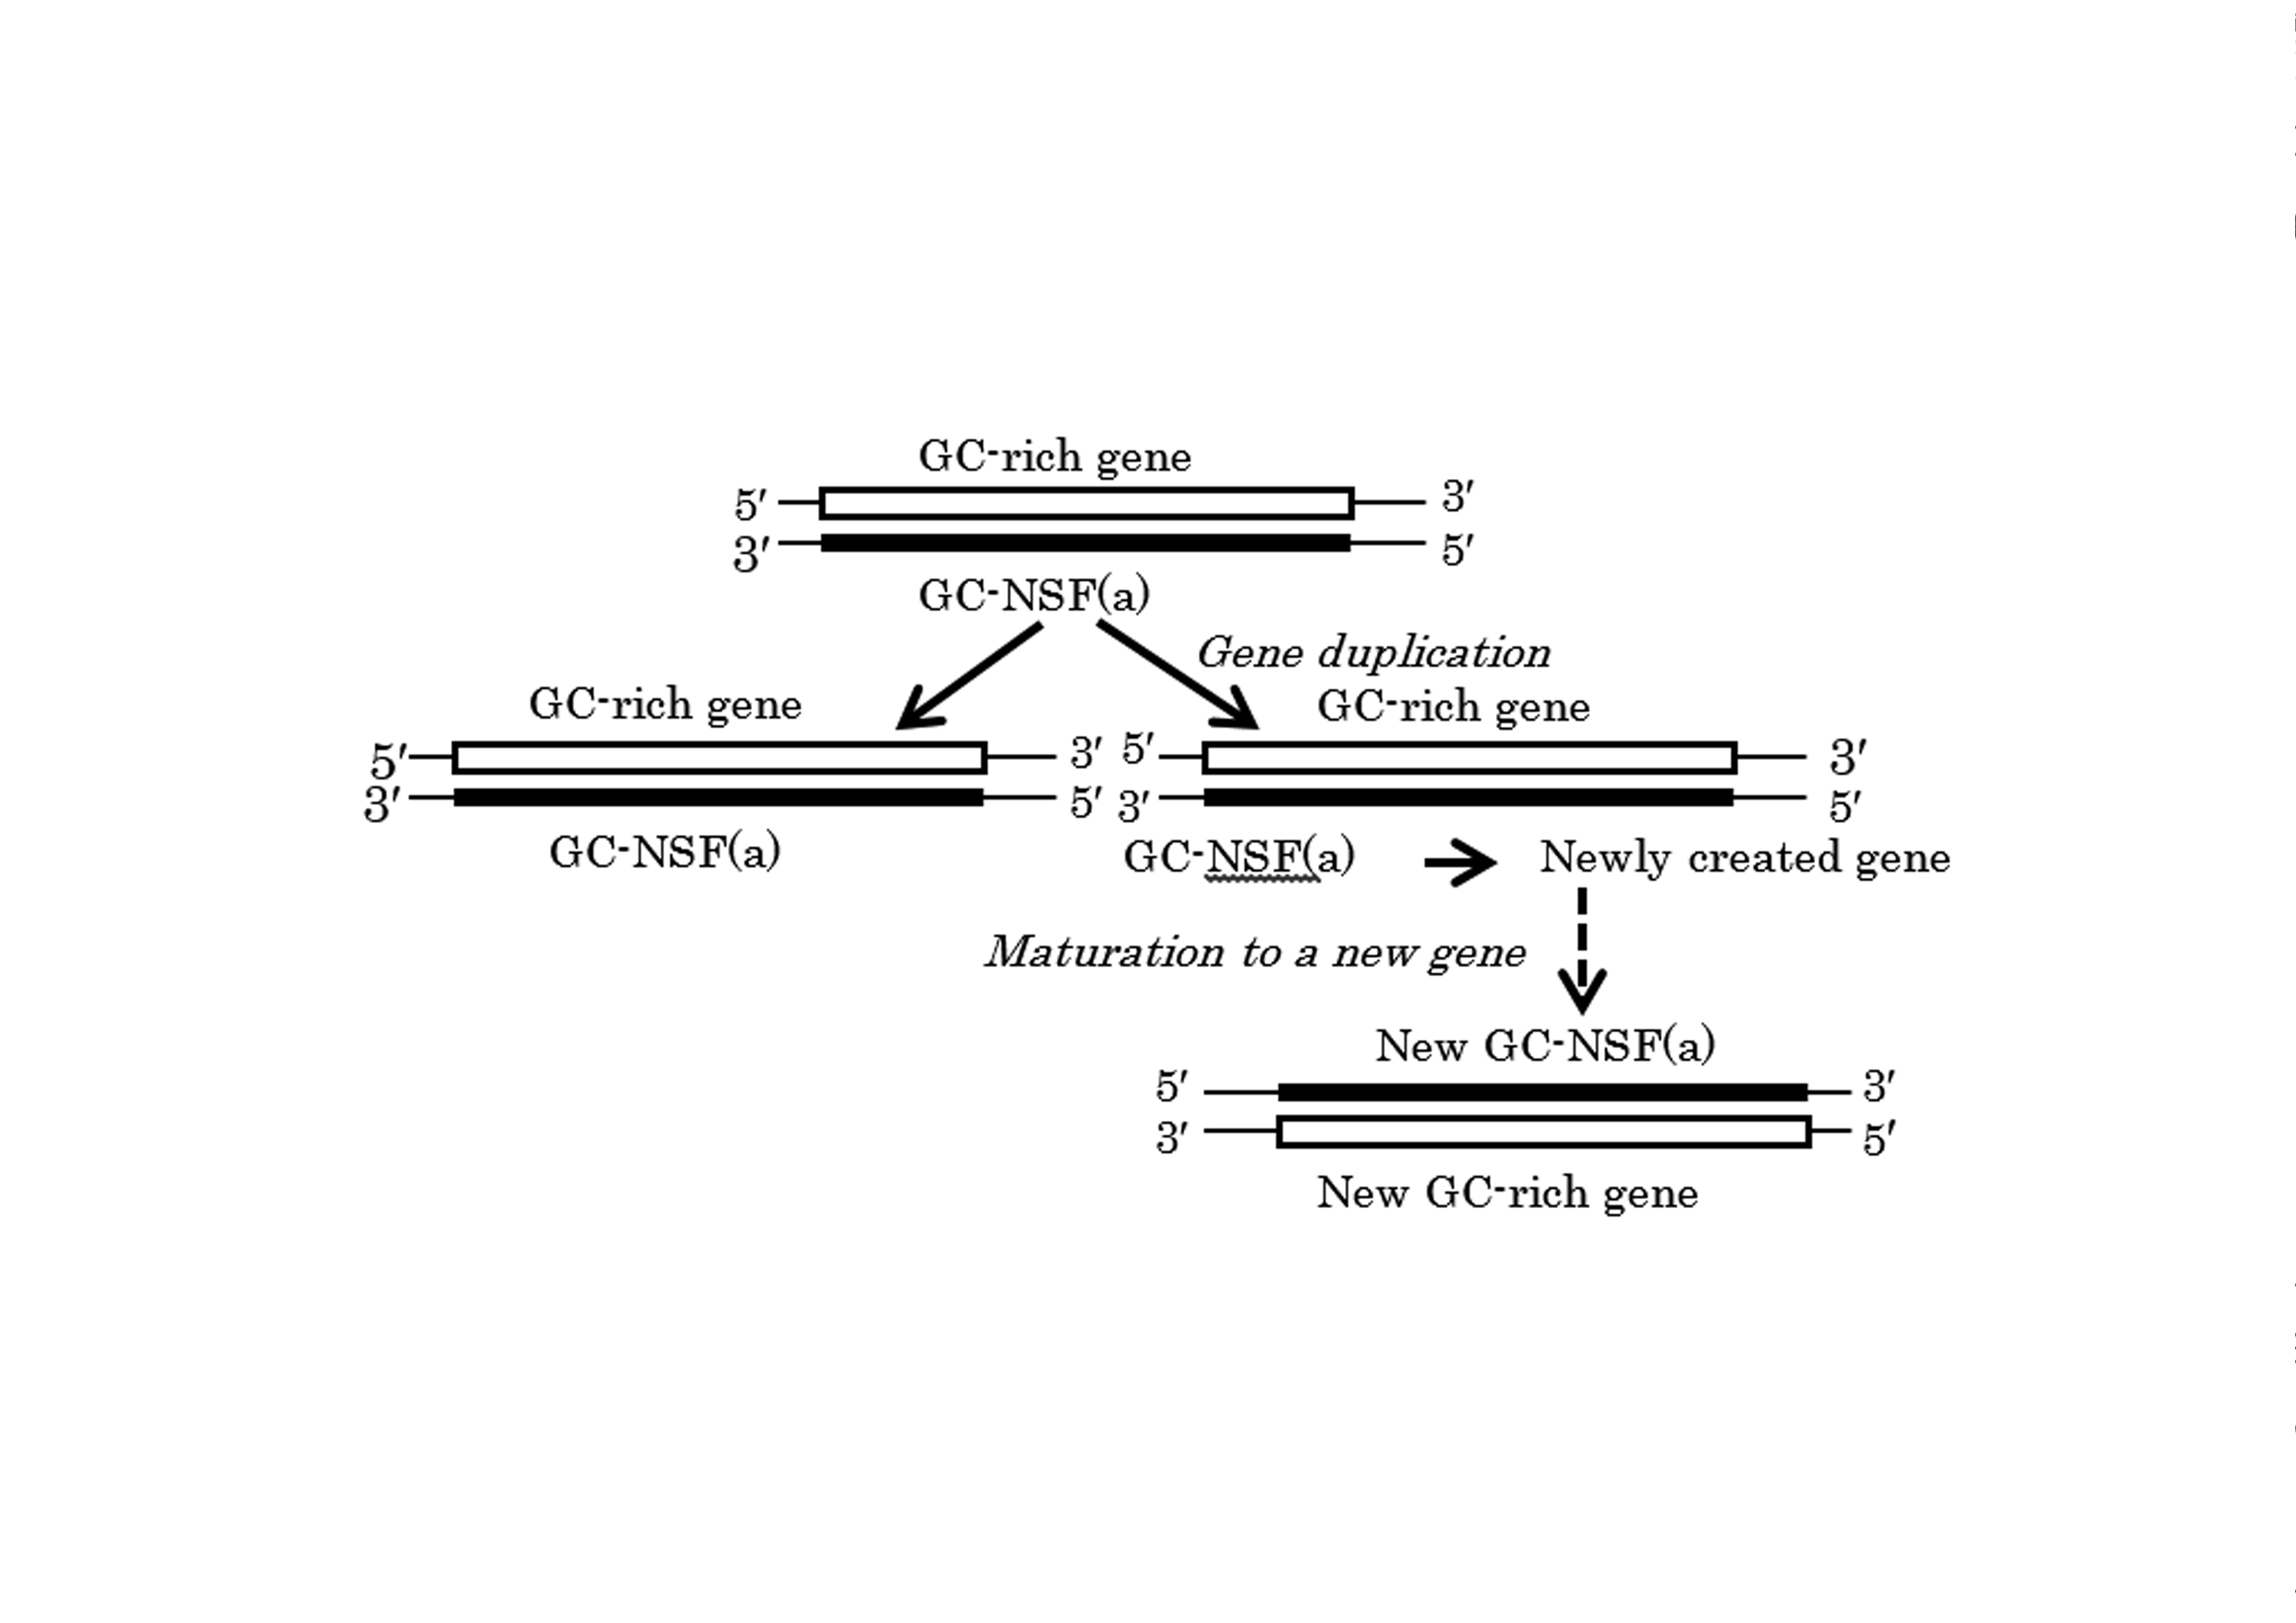 Direct Evidence of the GC-NSF(a) Hypothesis on Creation of an Entirely New Gene/Protein